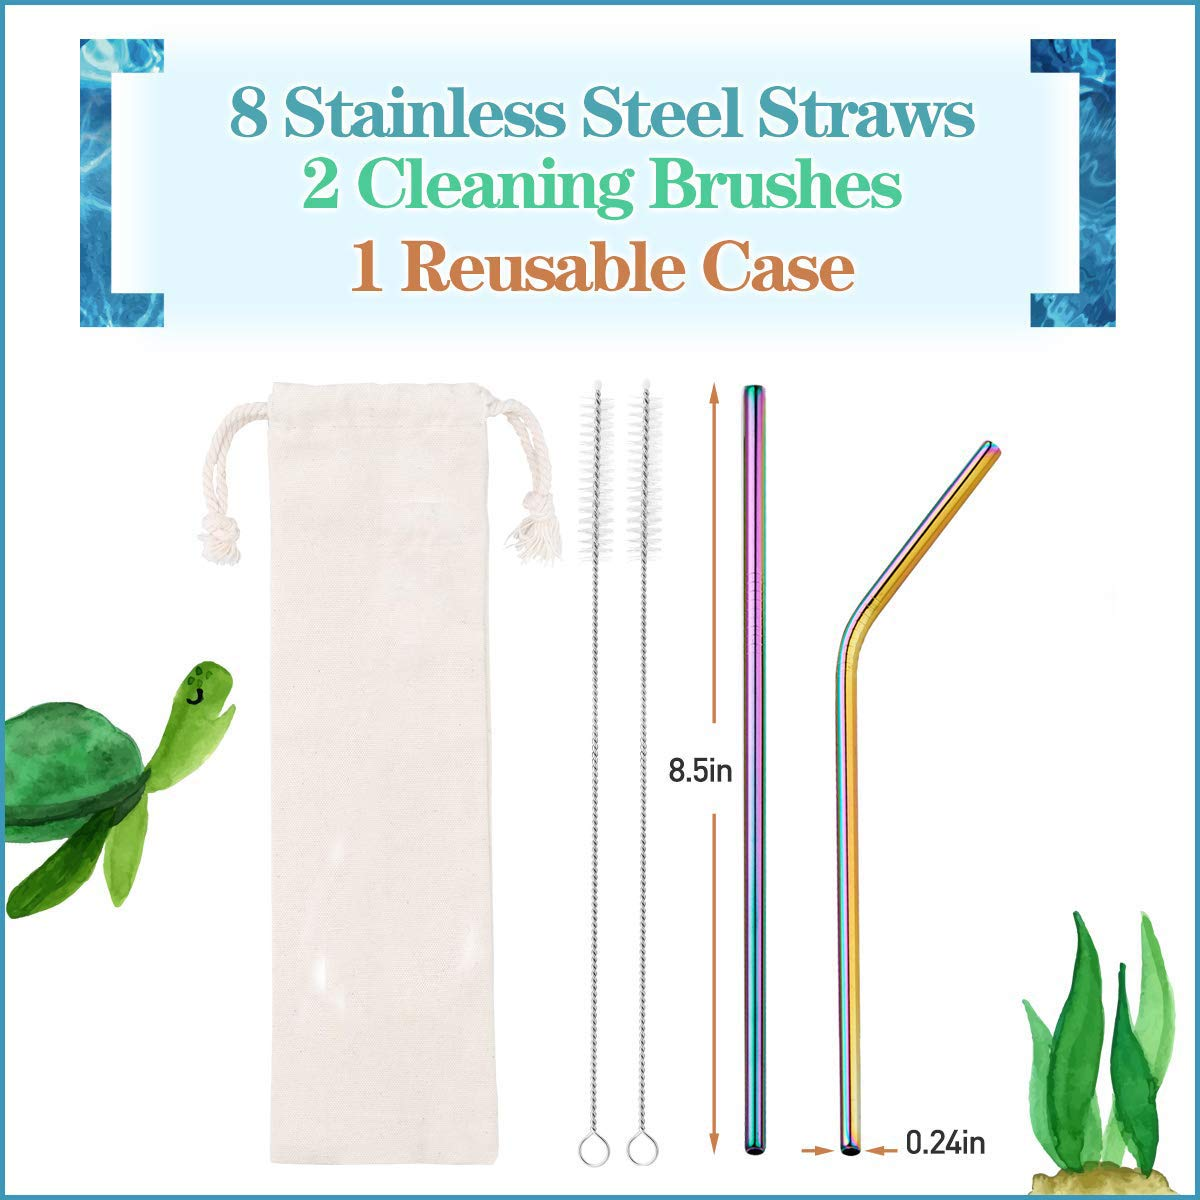 "LY-LONGER Stainless Steel Straw Set of 8 Metal Straws 8.5"" Long 0.24'' Diameter Reusable with Cleaning Brush for Drinking"